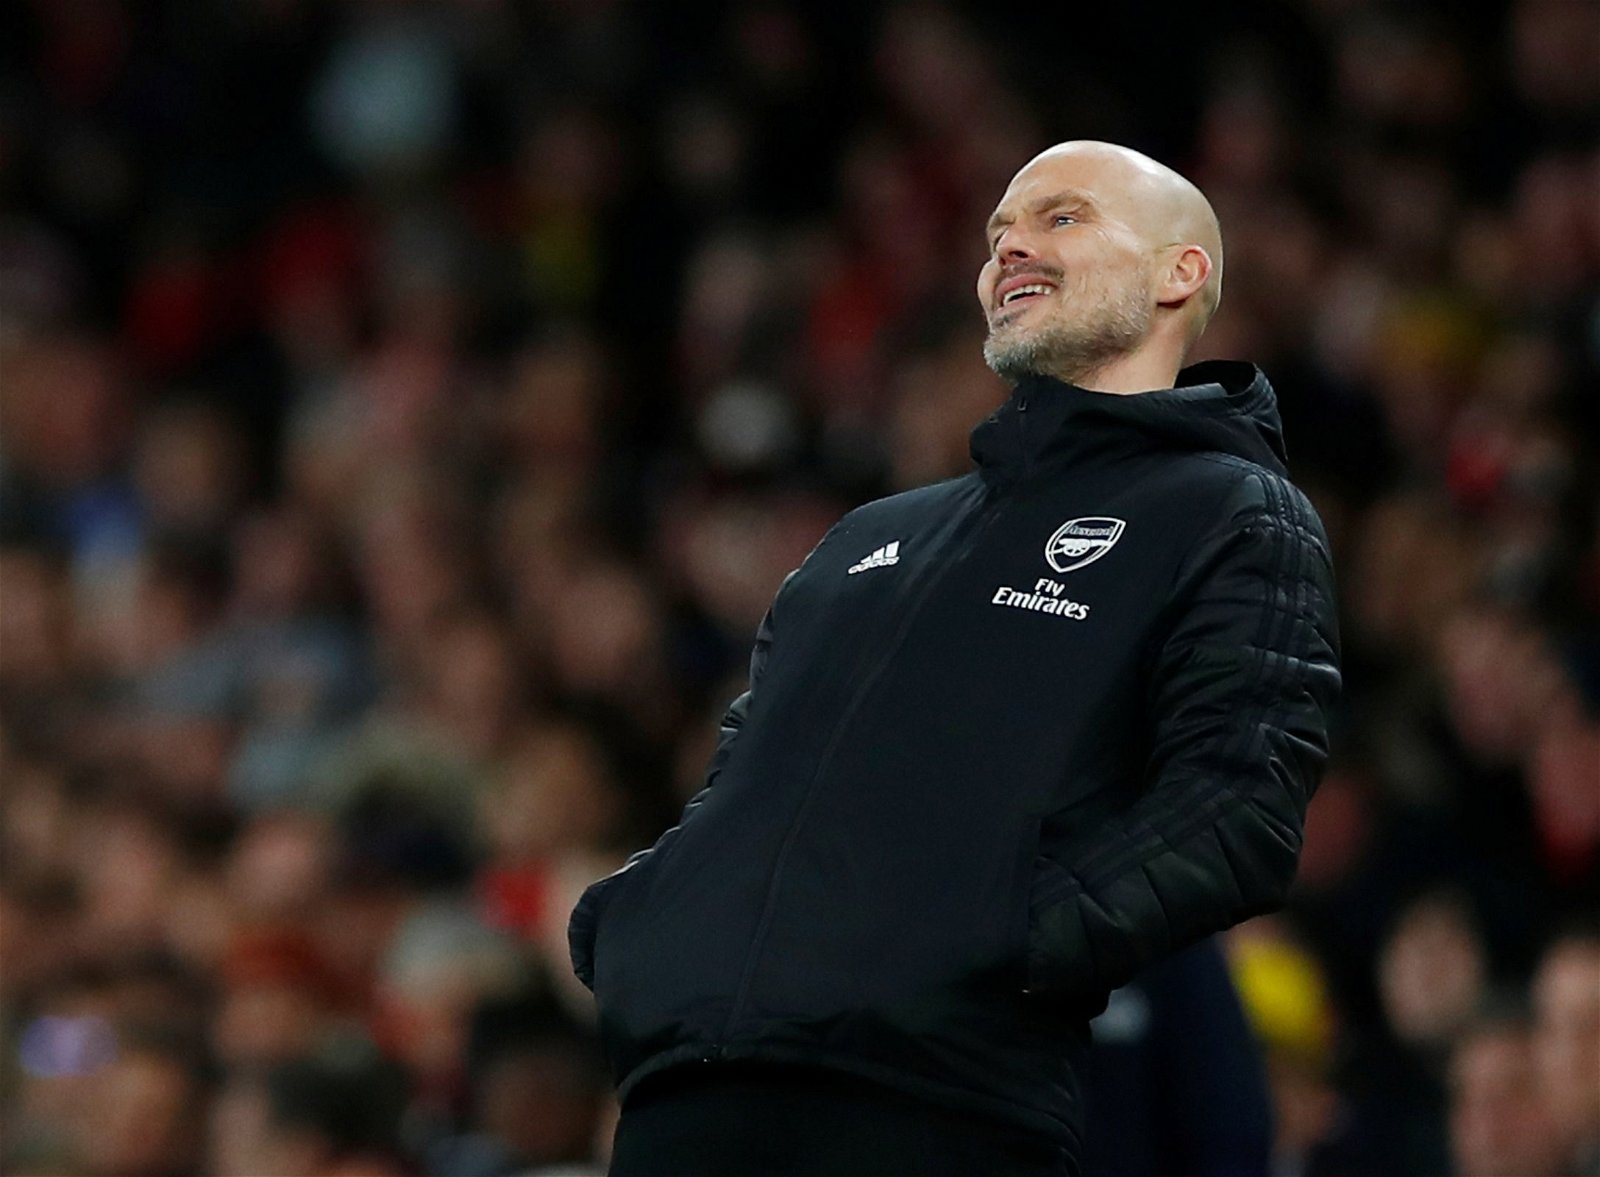 Over To You Raul Ljungberg S Desperate Plea Must Kick Arsenal S Board Into Action Opinion Footballfancast Com Friends and family of six people still unaccounted for after the london terrorist attack on saturday night are issuing frantic pleas on social media. football fancast